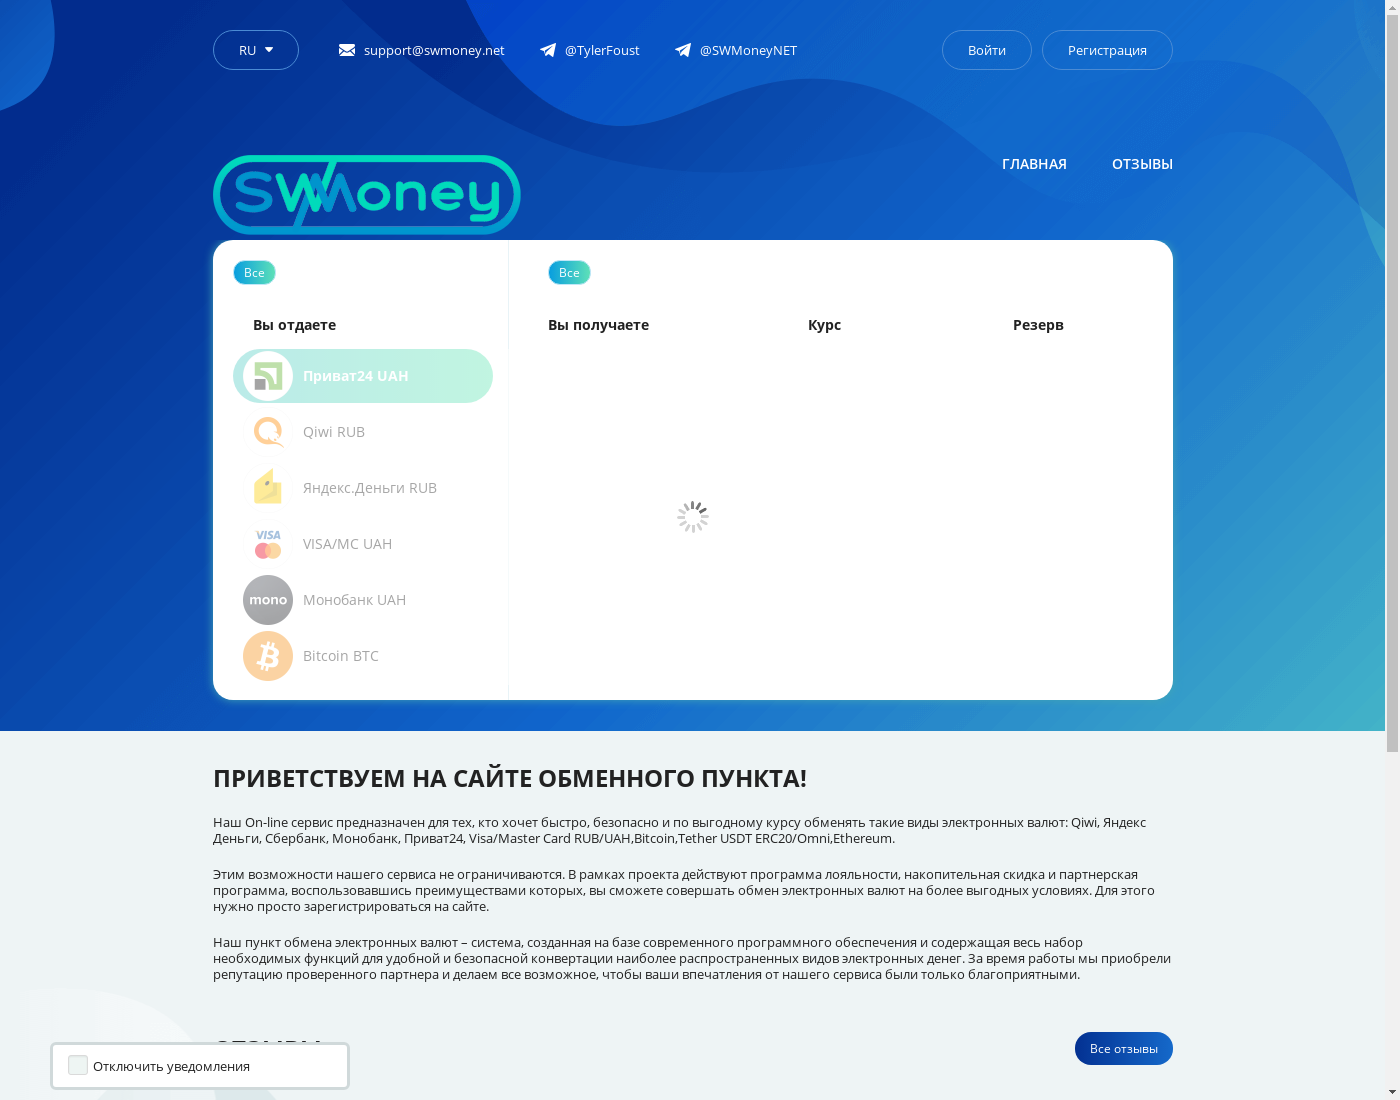 SWMoney user interface: the home page in English